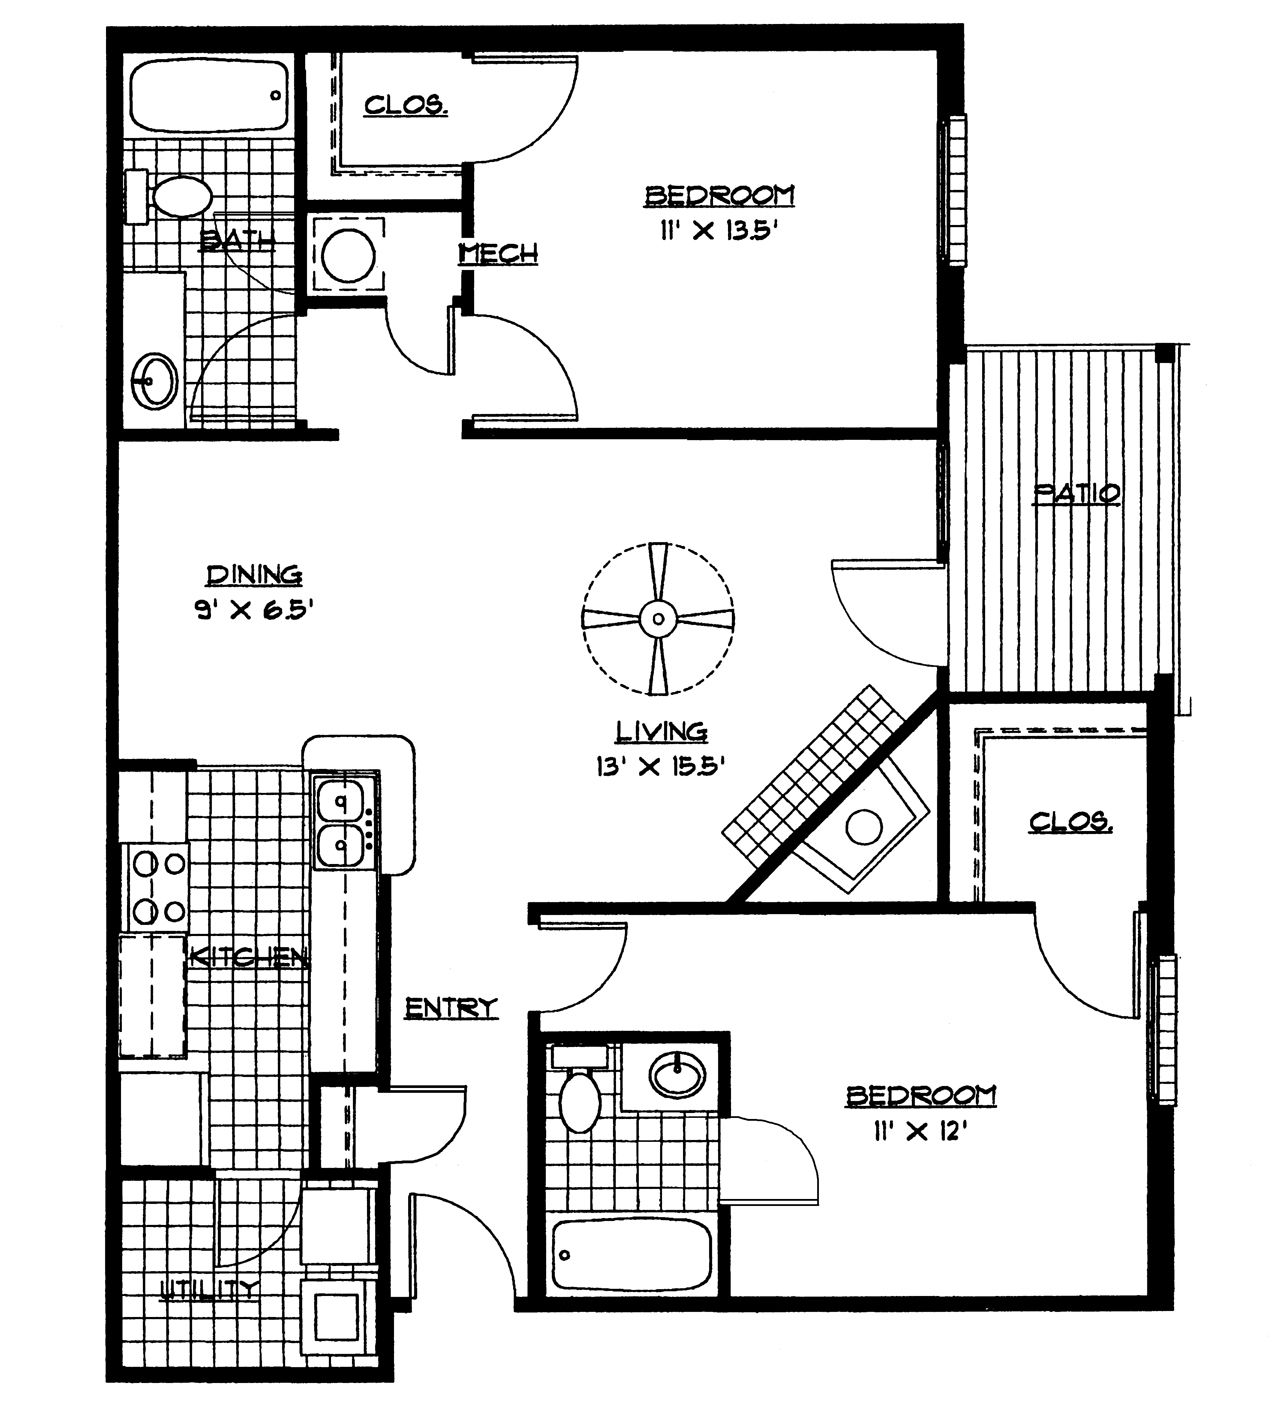 Small house floor plans 2 bedrooms bedroom floor plan for 2 bedroom homes to build